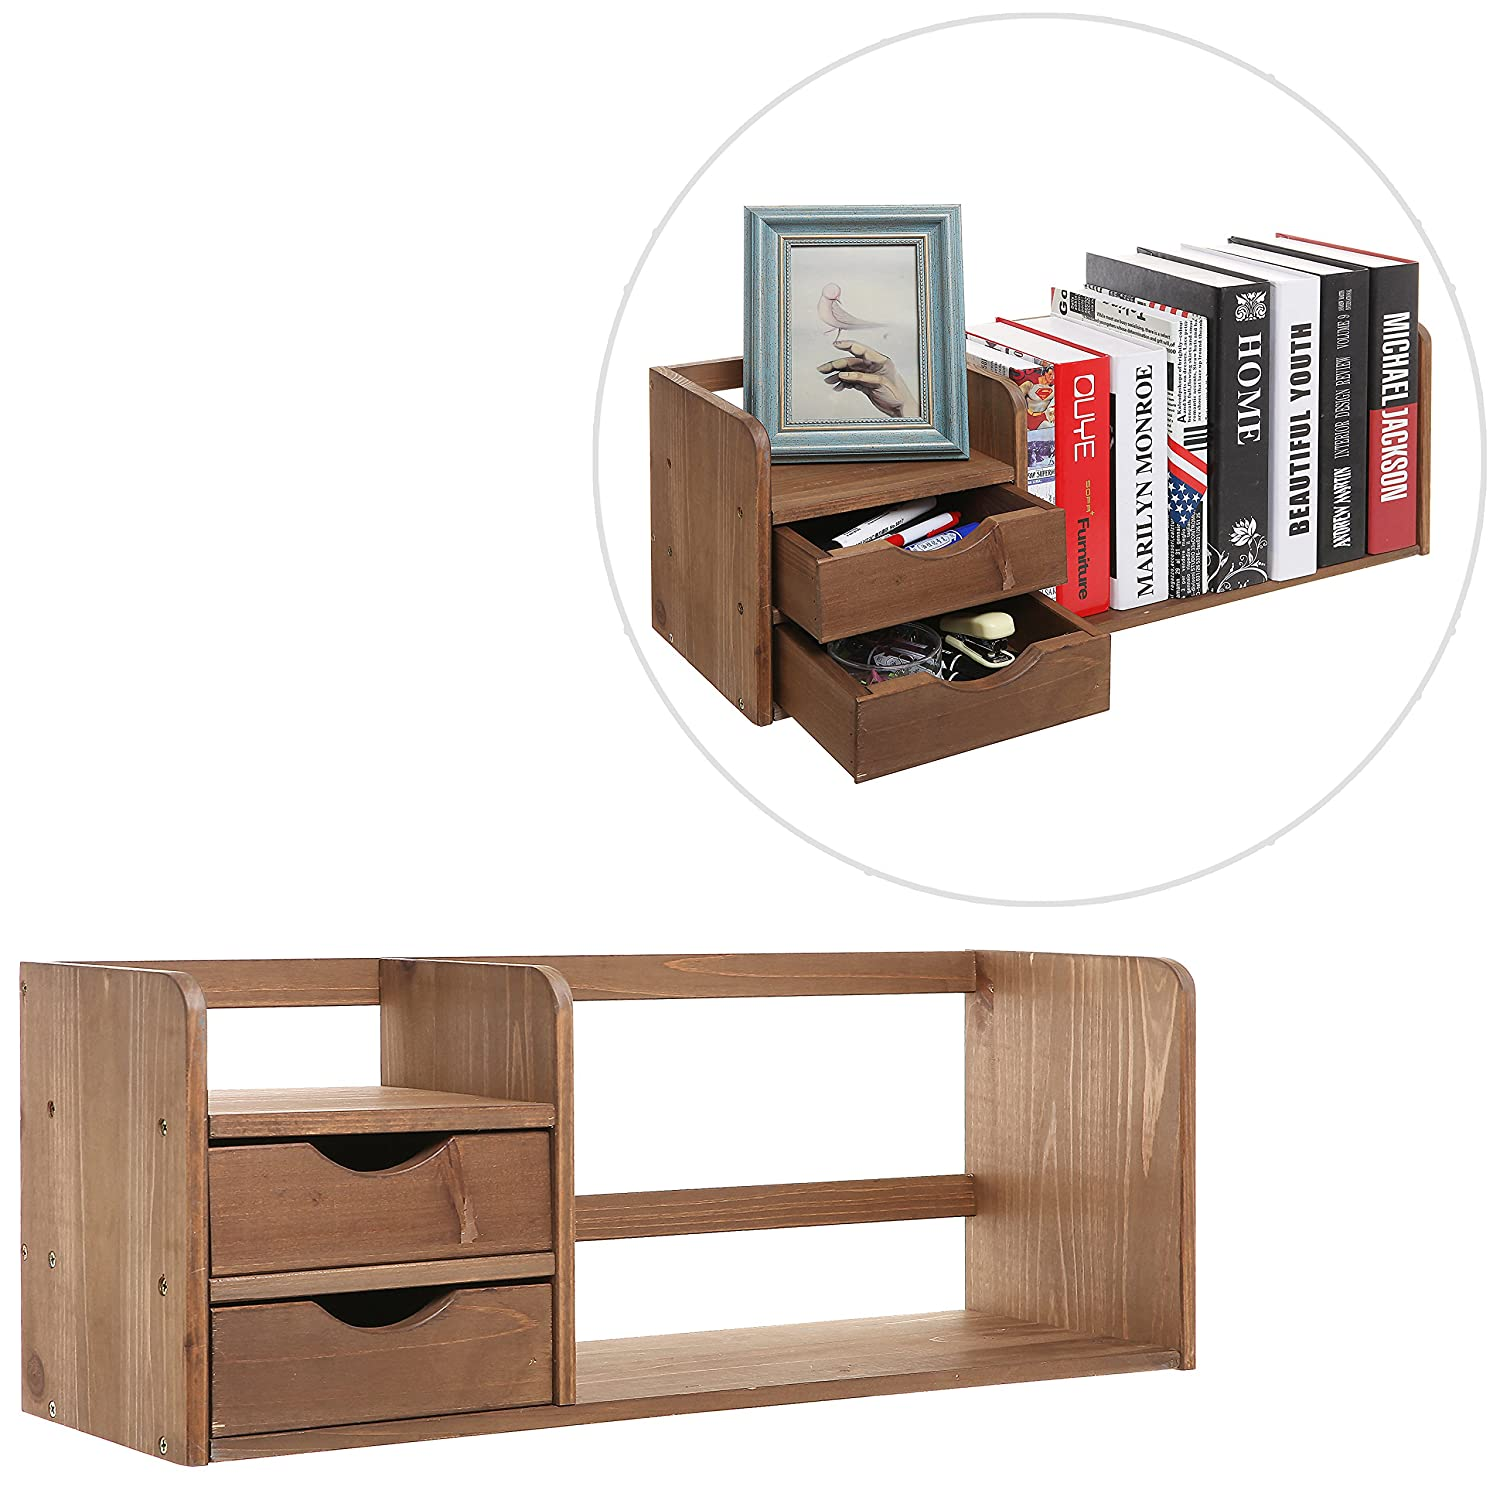 Amazon.com : Natural Brown Wood Desk Organizer With Two Drawers Bookshelf  Display Rack For Office Home : Office Products